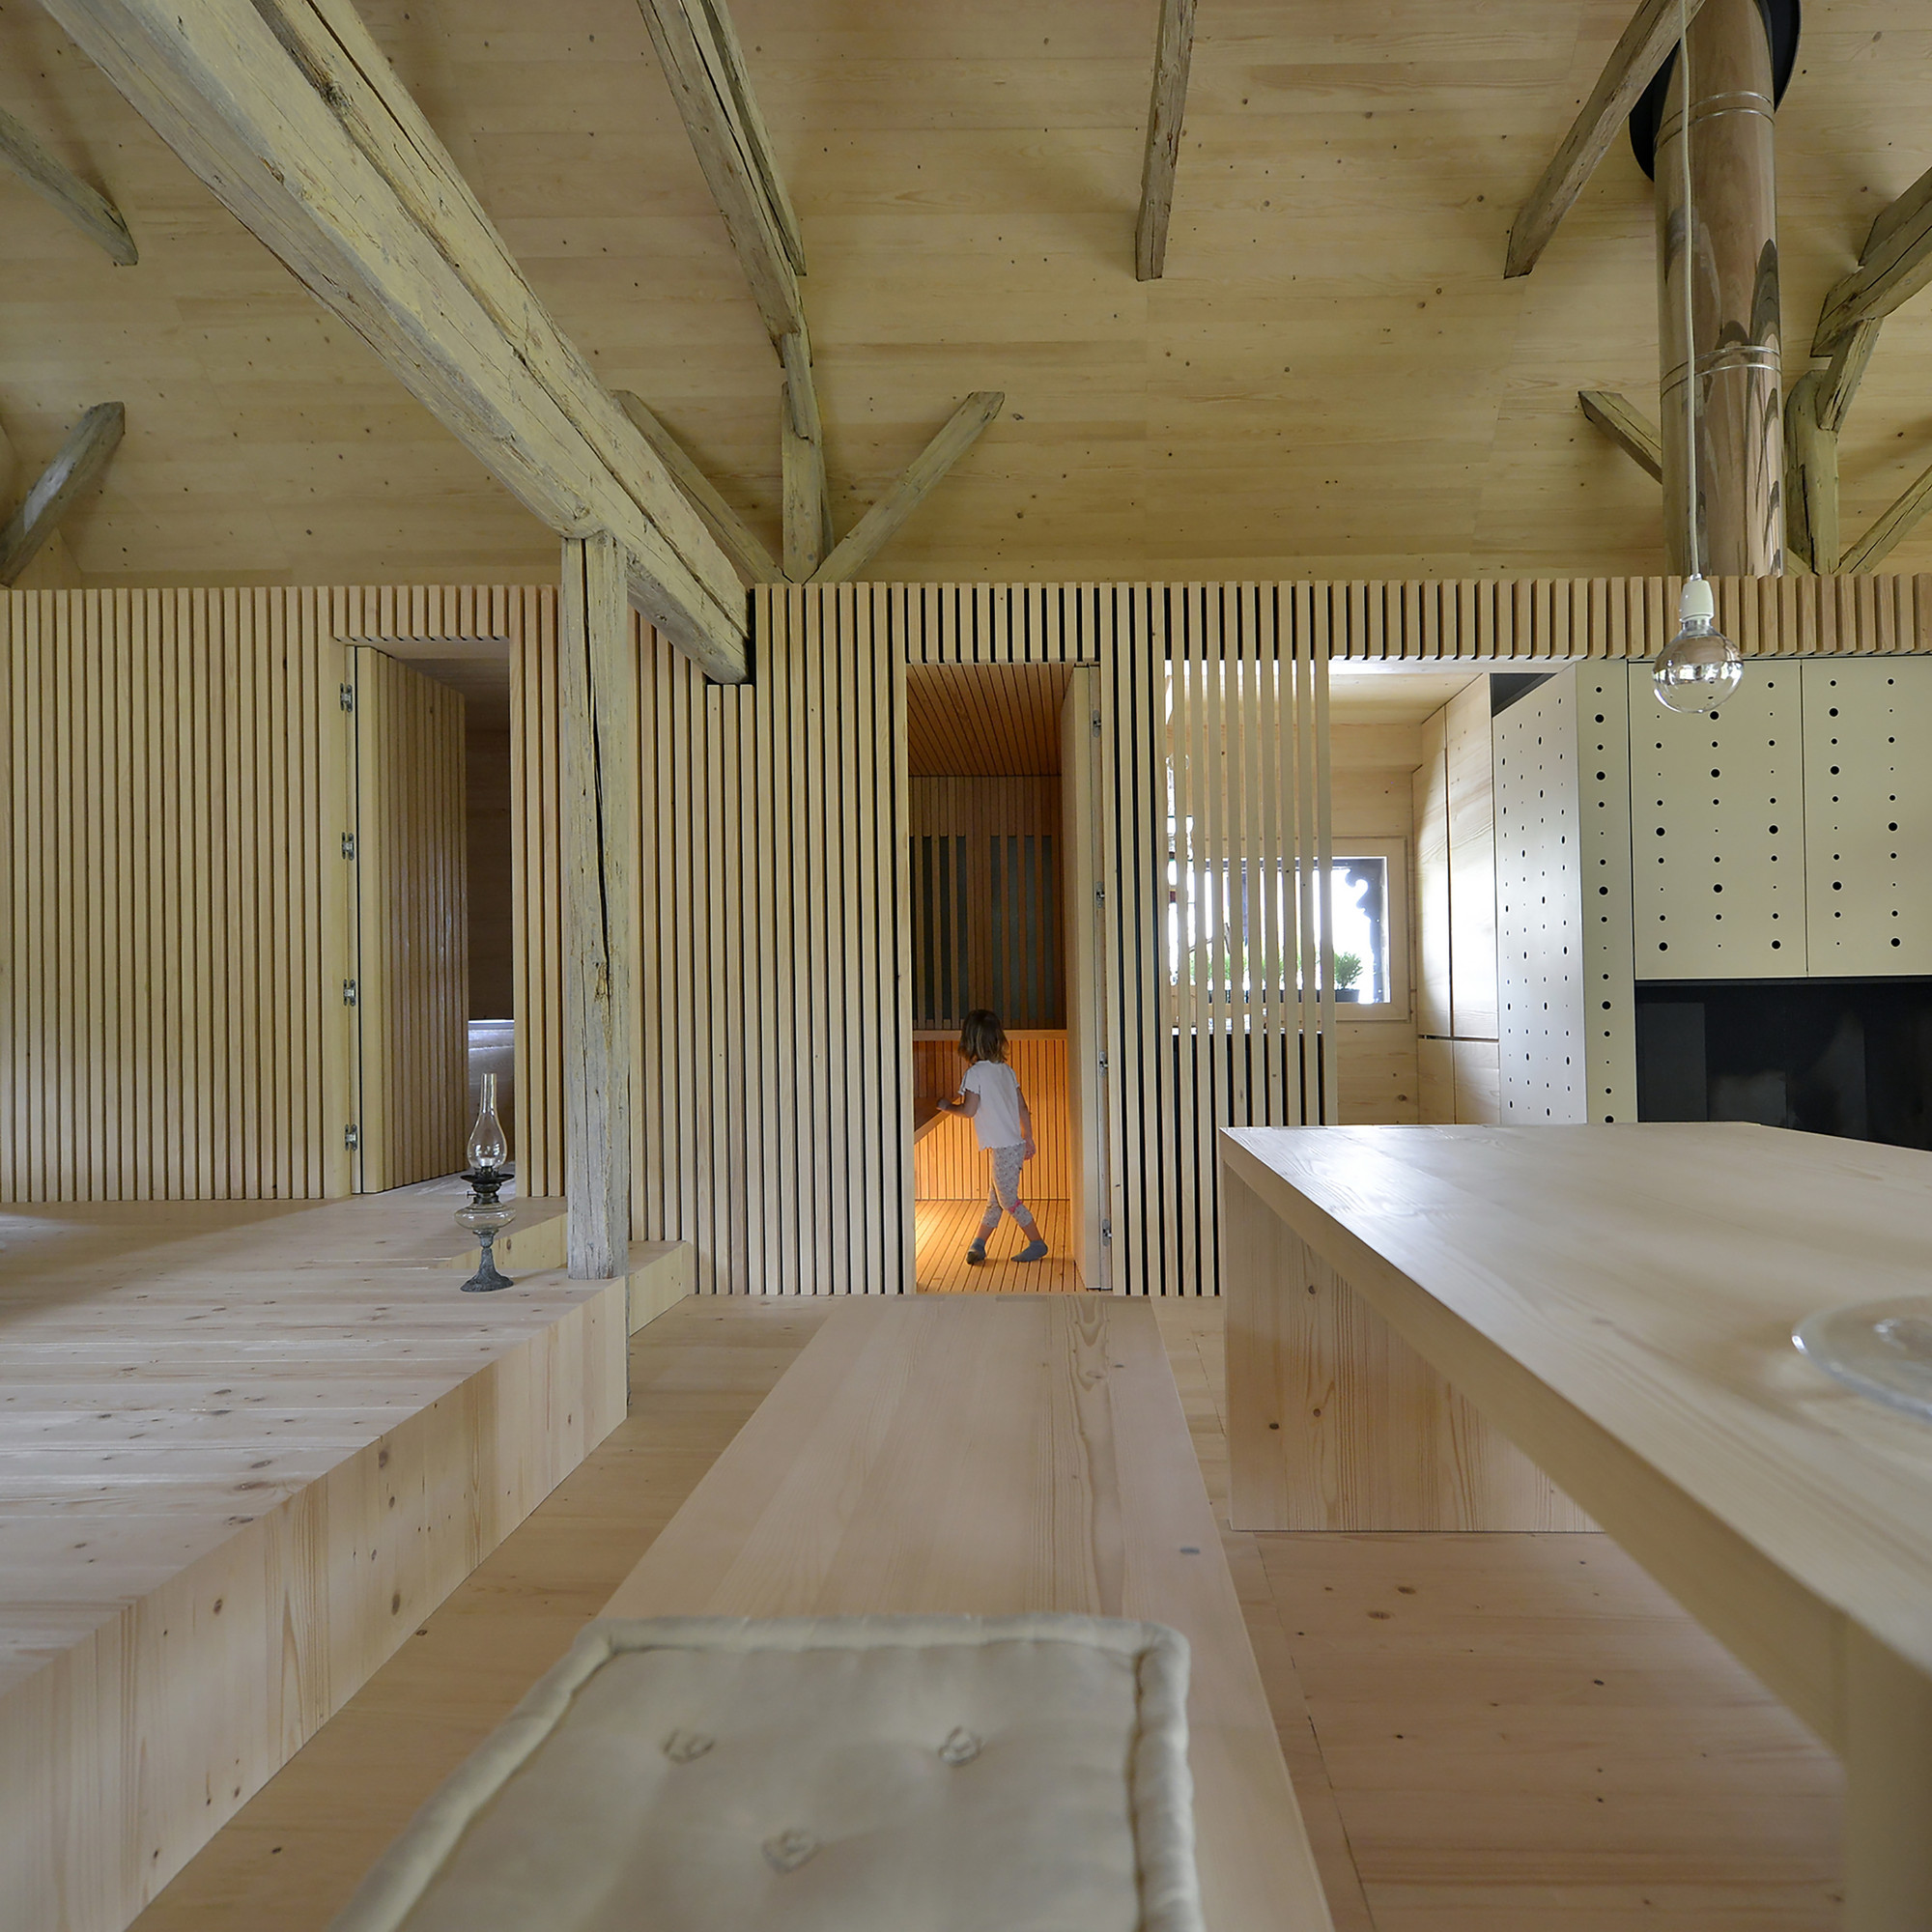 Gallery Of Alpine Barn Apartment Ofis Architects 33 Interiors Inside Ideas Interiors design about Everything [magnanprojects.com]